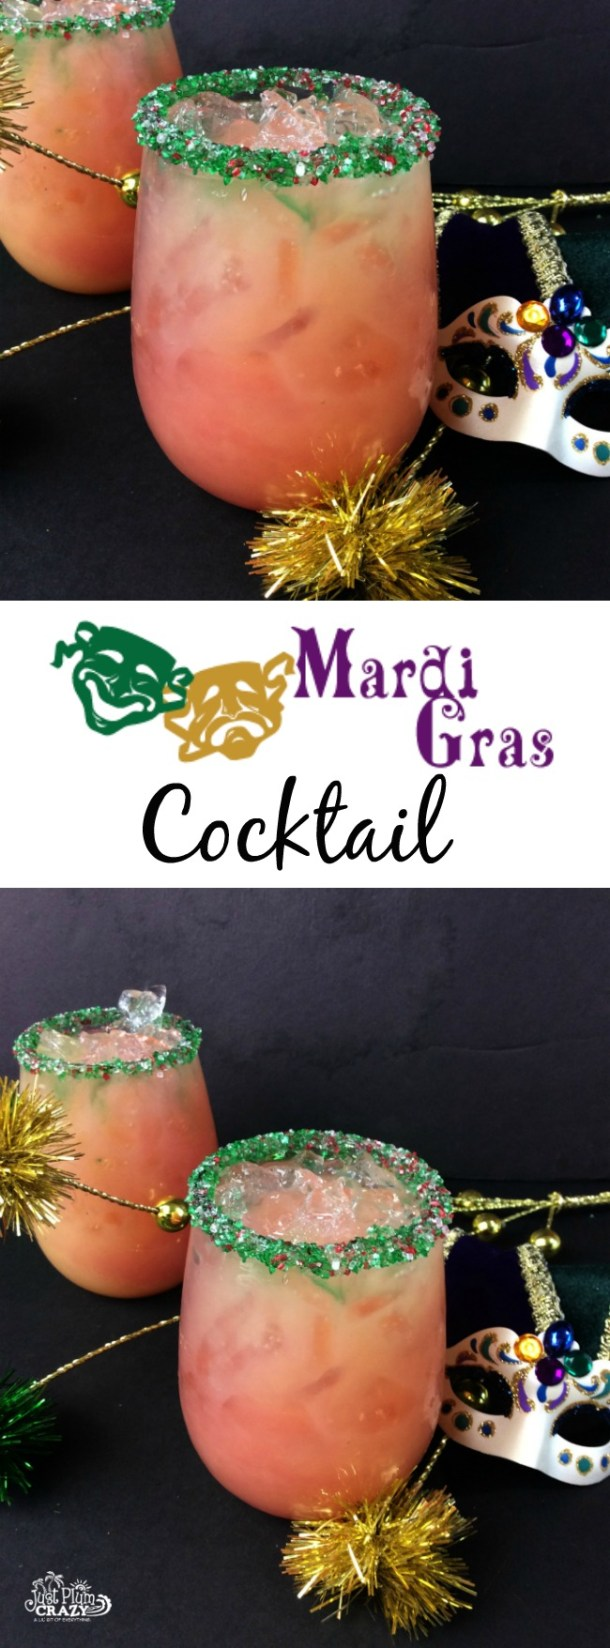 No matter if you celebrate Mardi Gras, Fat Tuesday, Shrove Tuesday or Paczki Day (yes, I am Polish!), this Mardi Gras Cocktail recipe is perfect it.